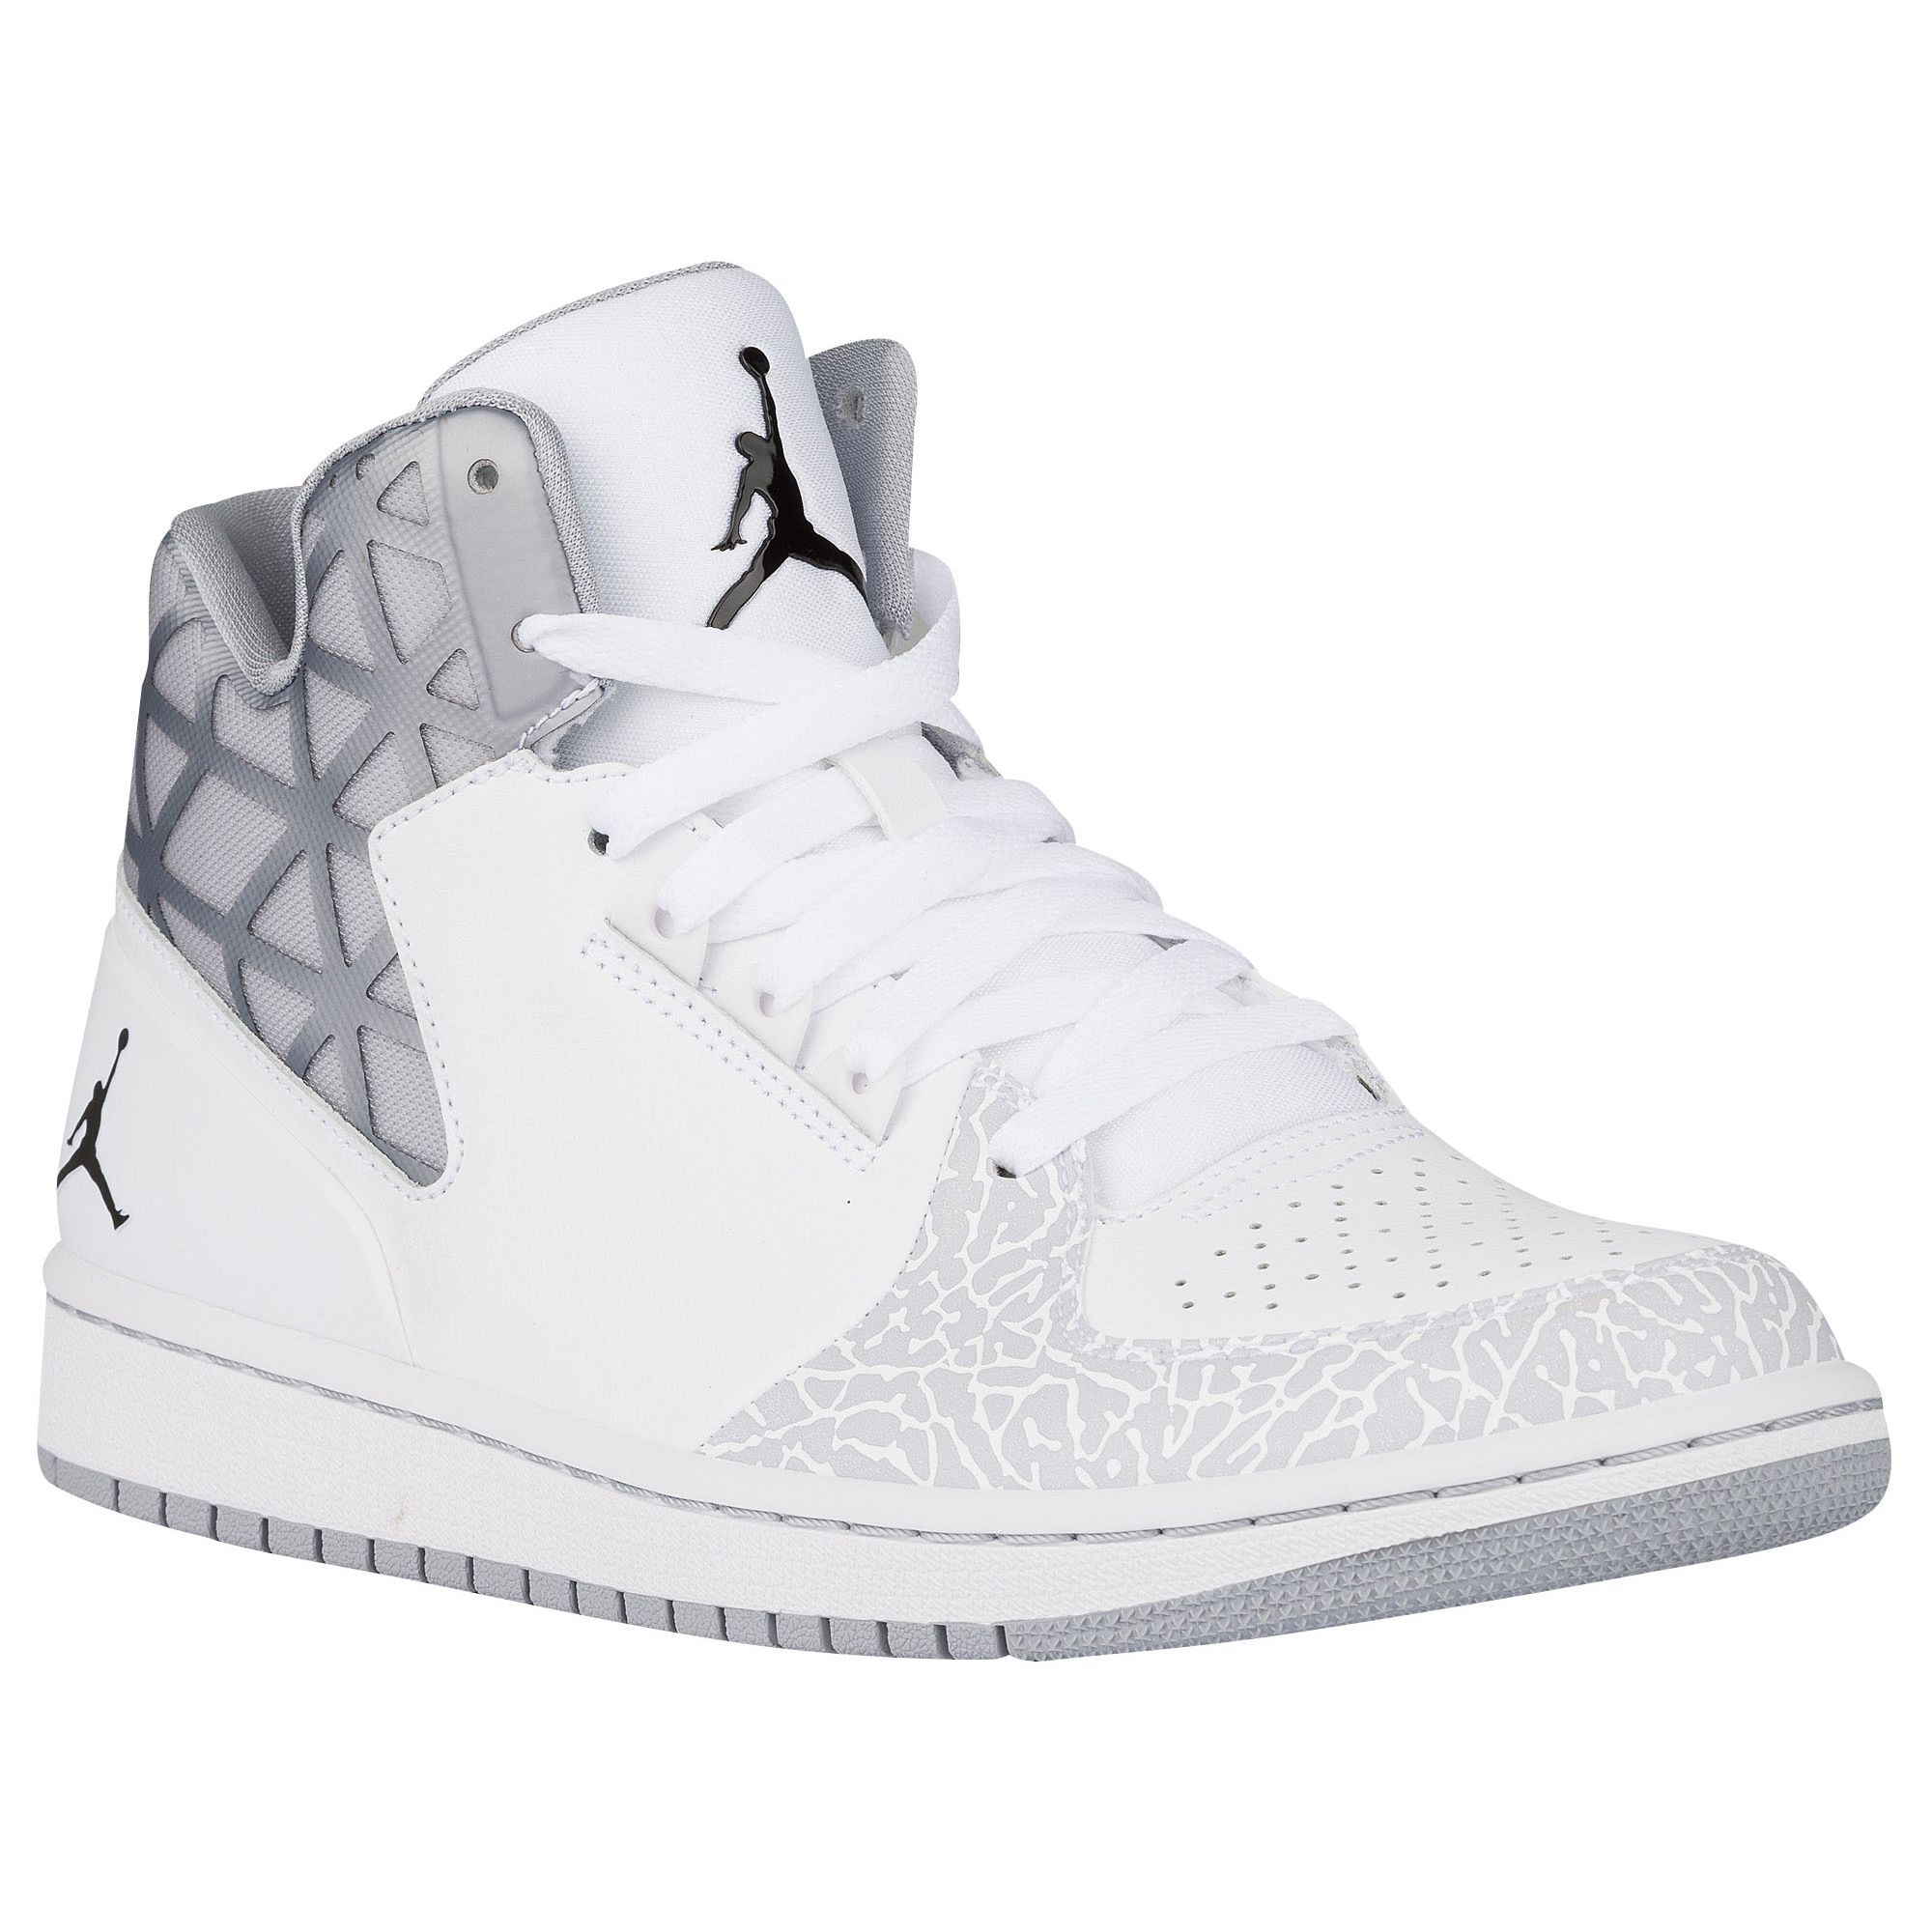 f1c12b3e7 Jordan 1 Flight 3 - Men's - Basketball - Shoes - White/Cool Grey ...